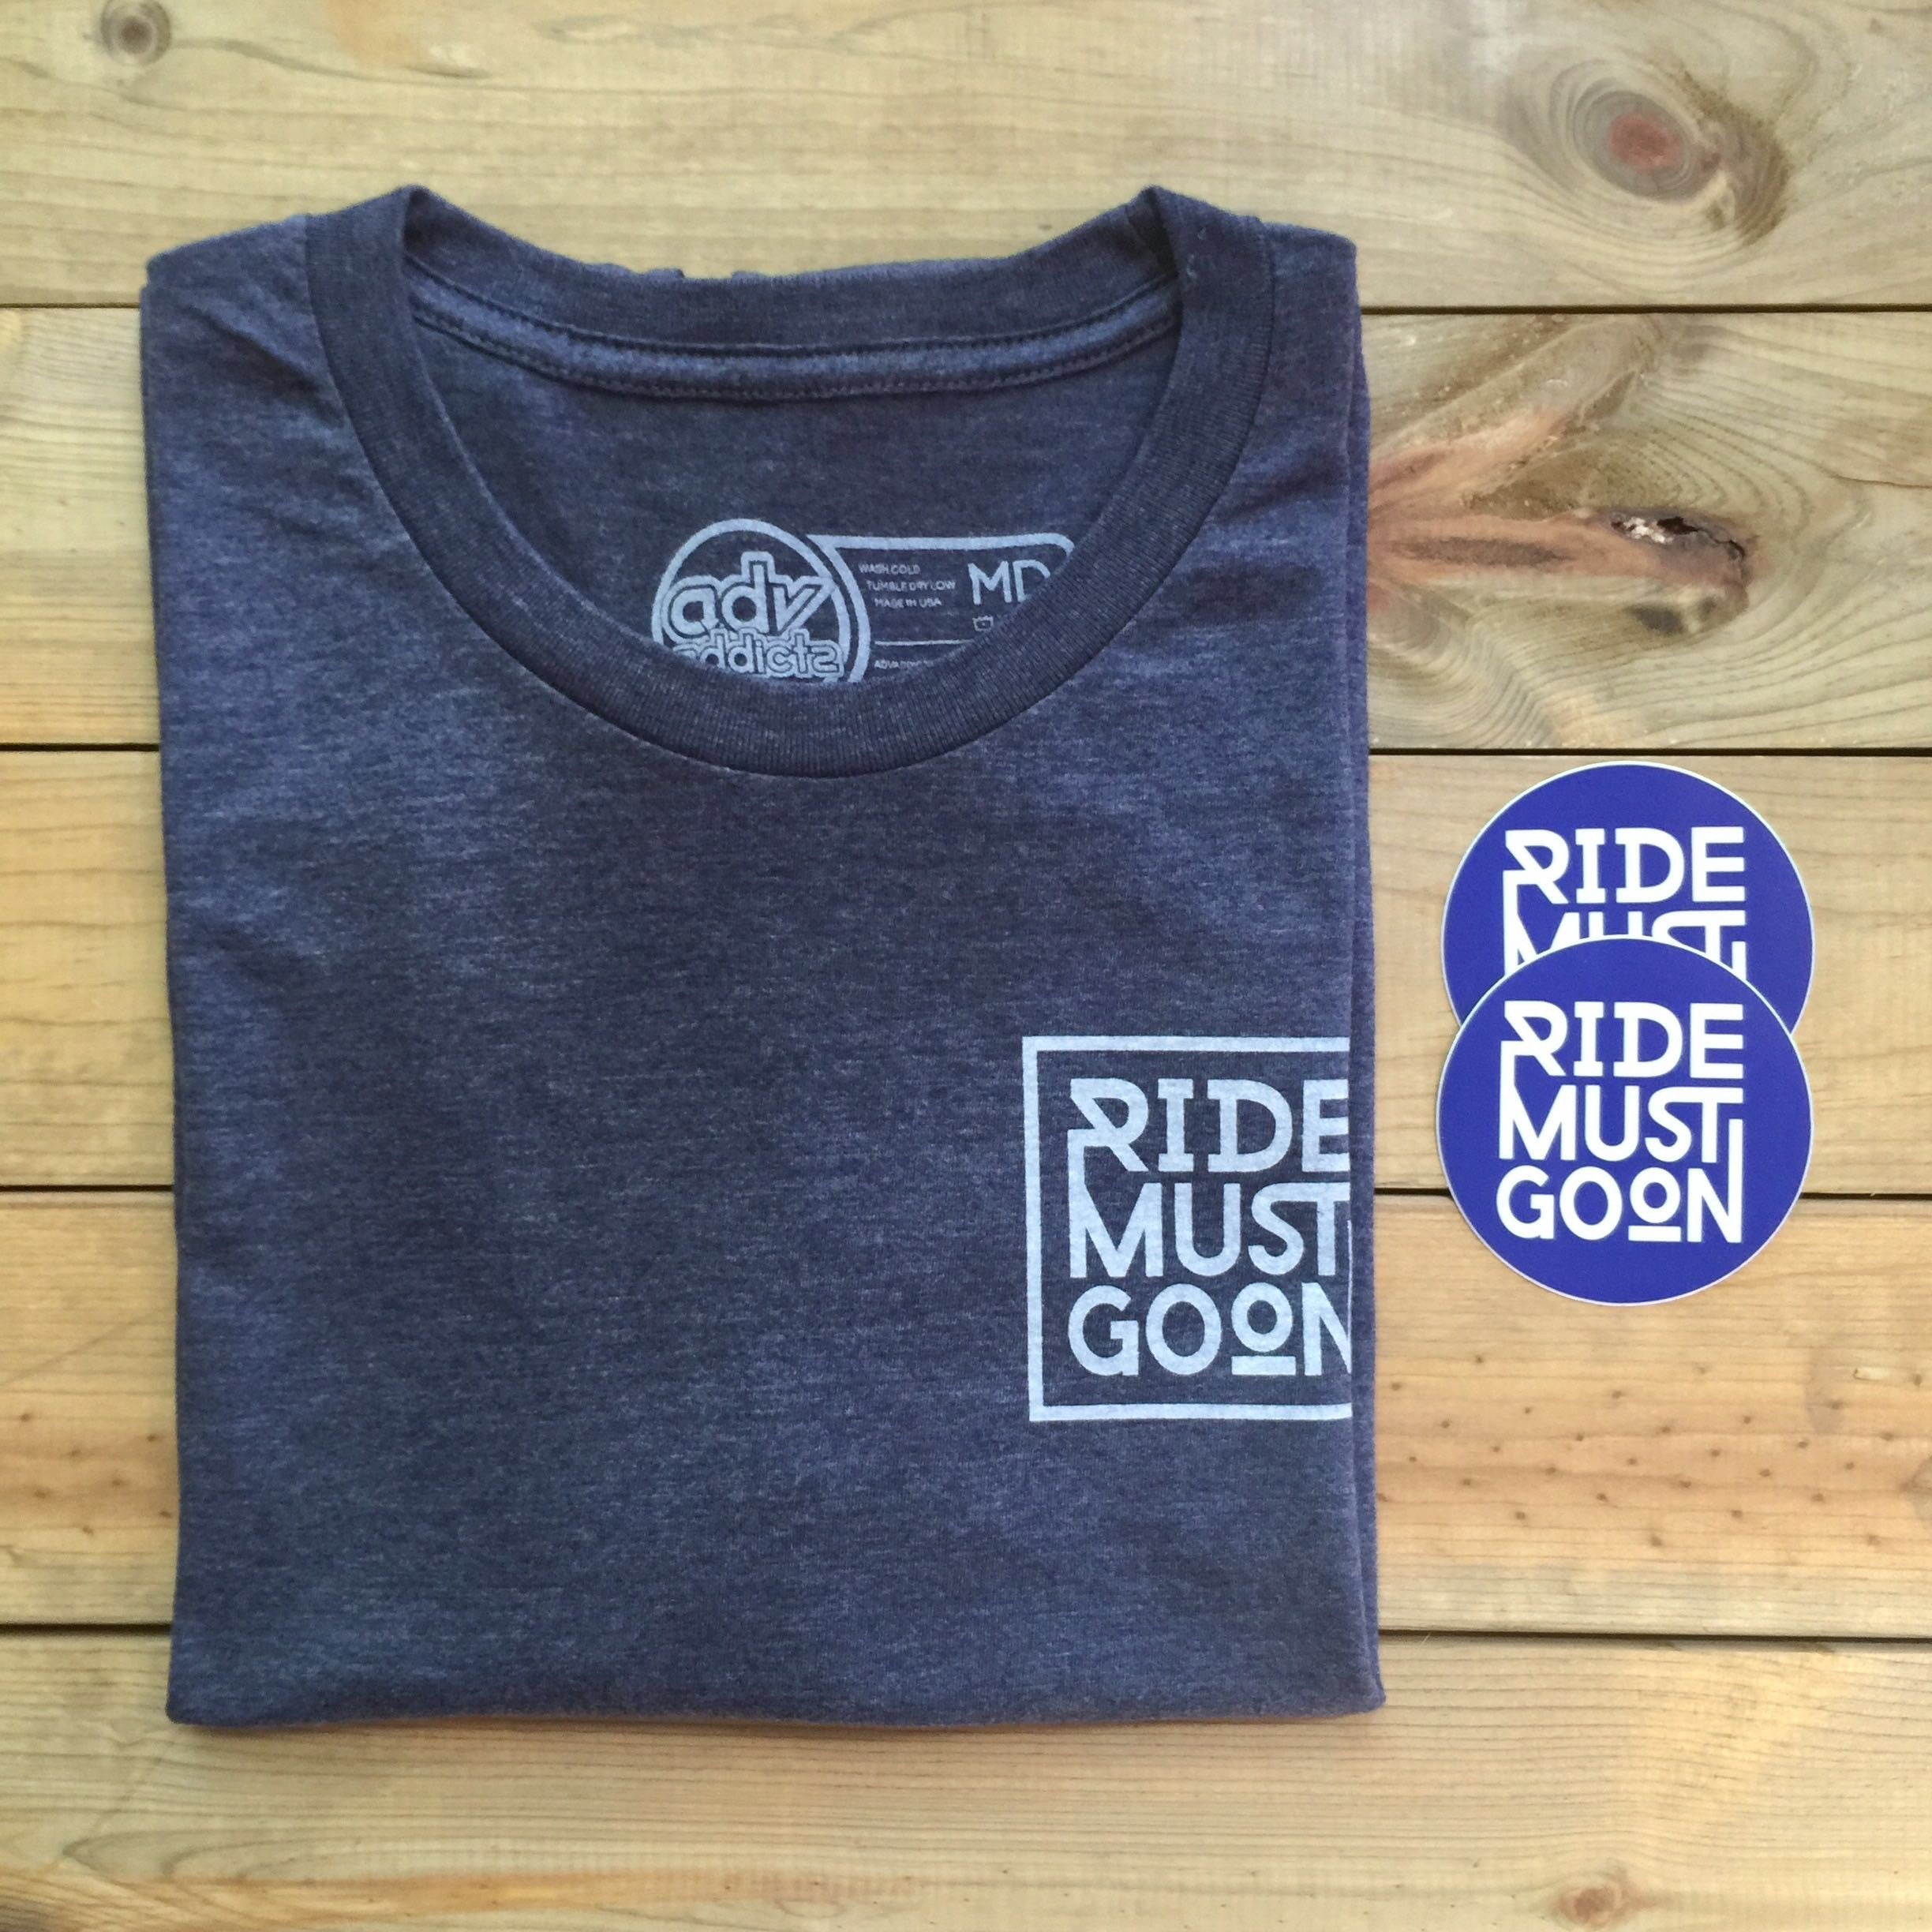 RIDE MUST GO ON x ADV ADDICTS 2017 TEE